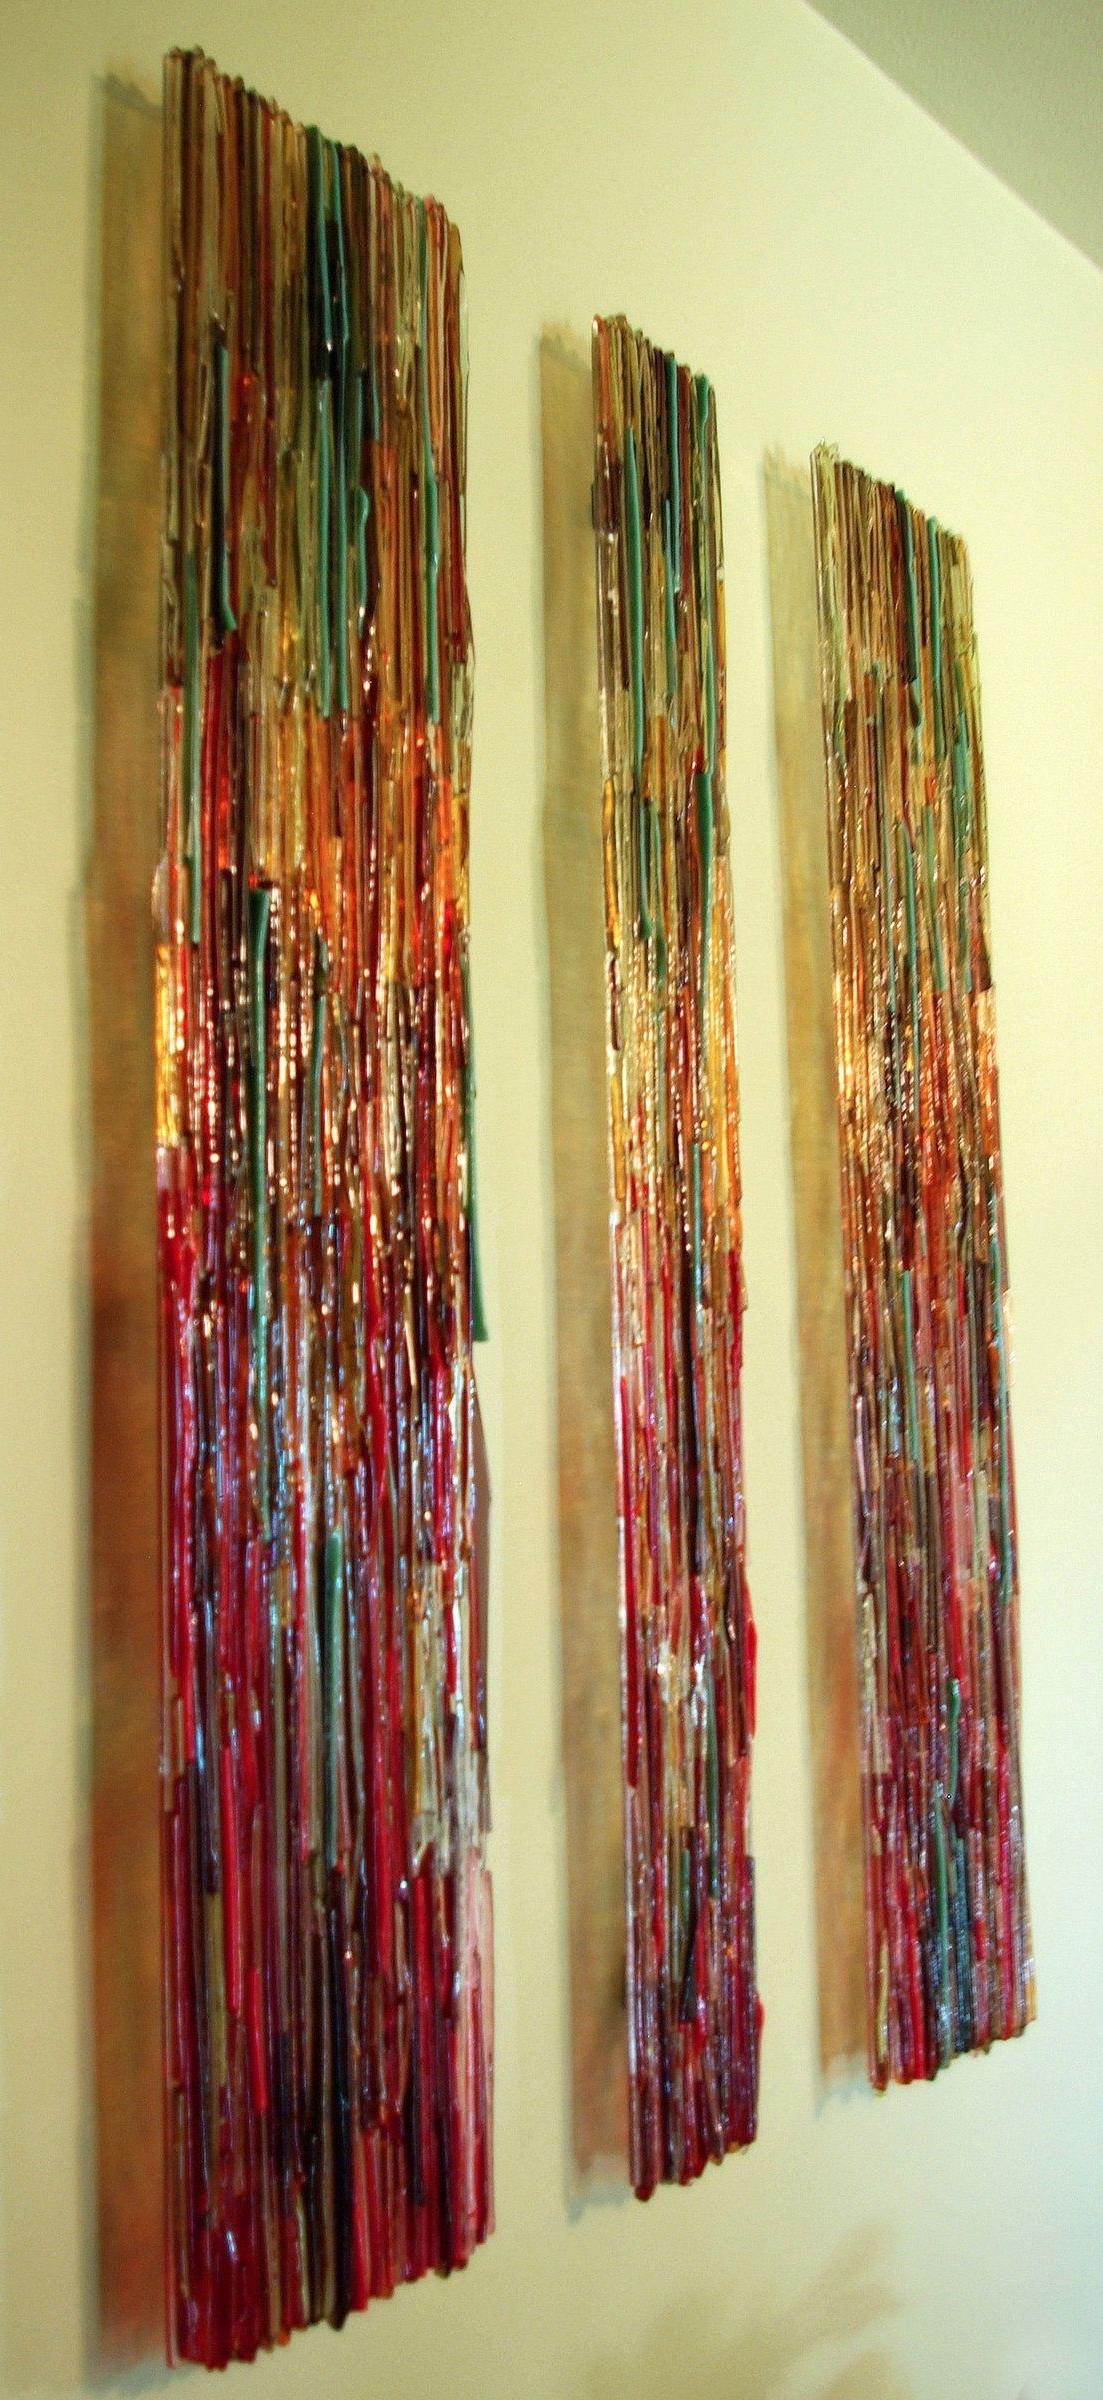 Photos of Fused Glass Wall Artwork (Showing 7 of 15 Photos)